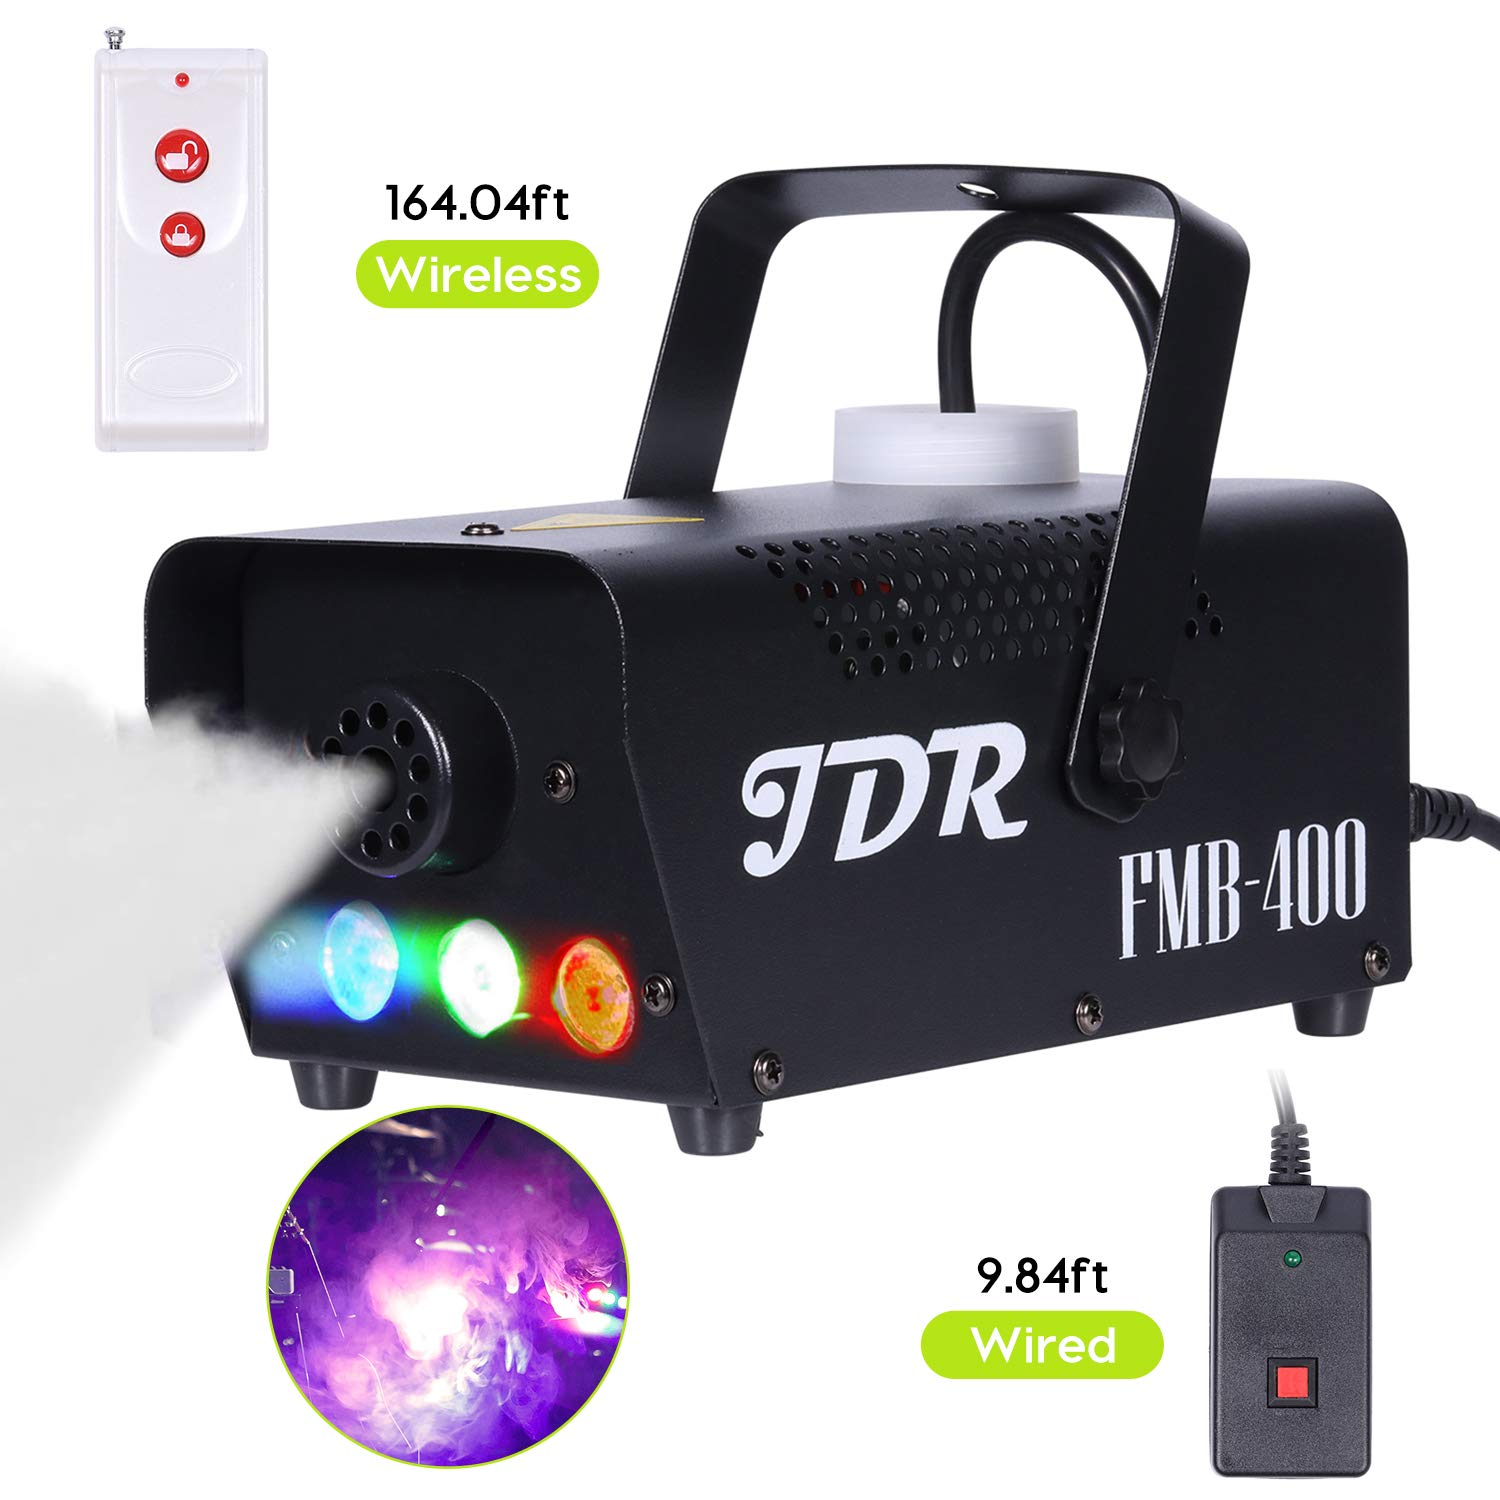 JDR Fog Machine with Controllable lights, DJ LED Smoke Machine(Red,Green,Blue) with Wireless and Wired Remote Control for Holidays Parties Weddings Christmas Halloween, with Fuse Protection